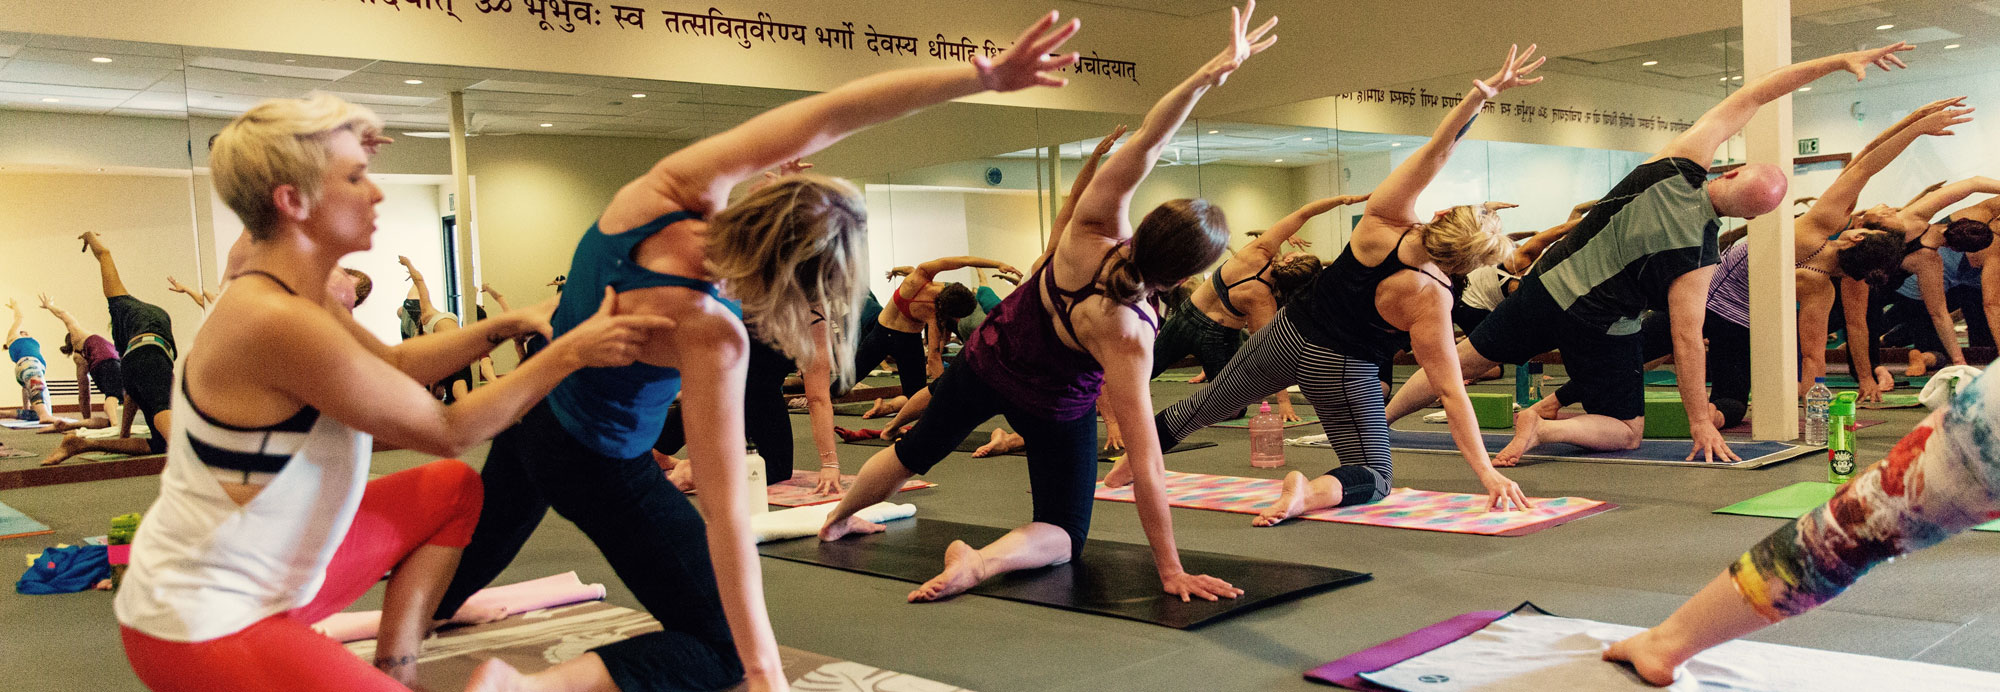 Yoga Classes at Anchorage Yoga